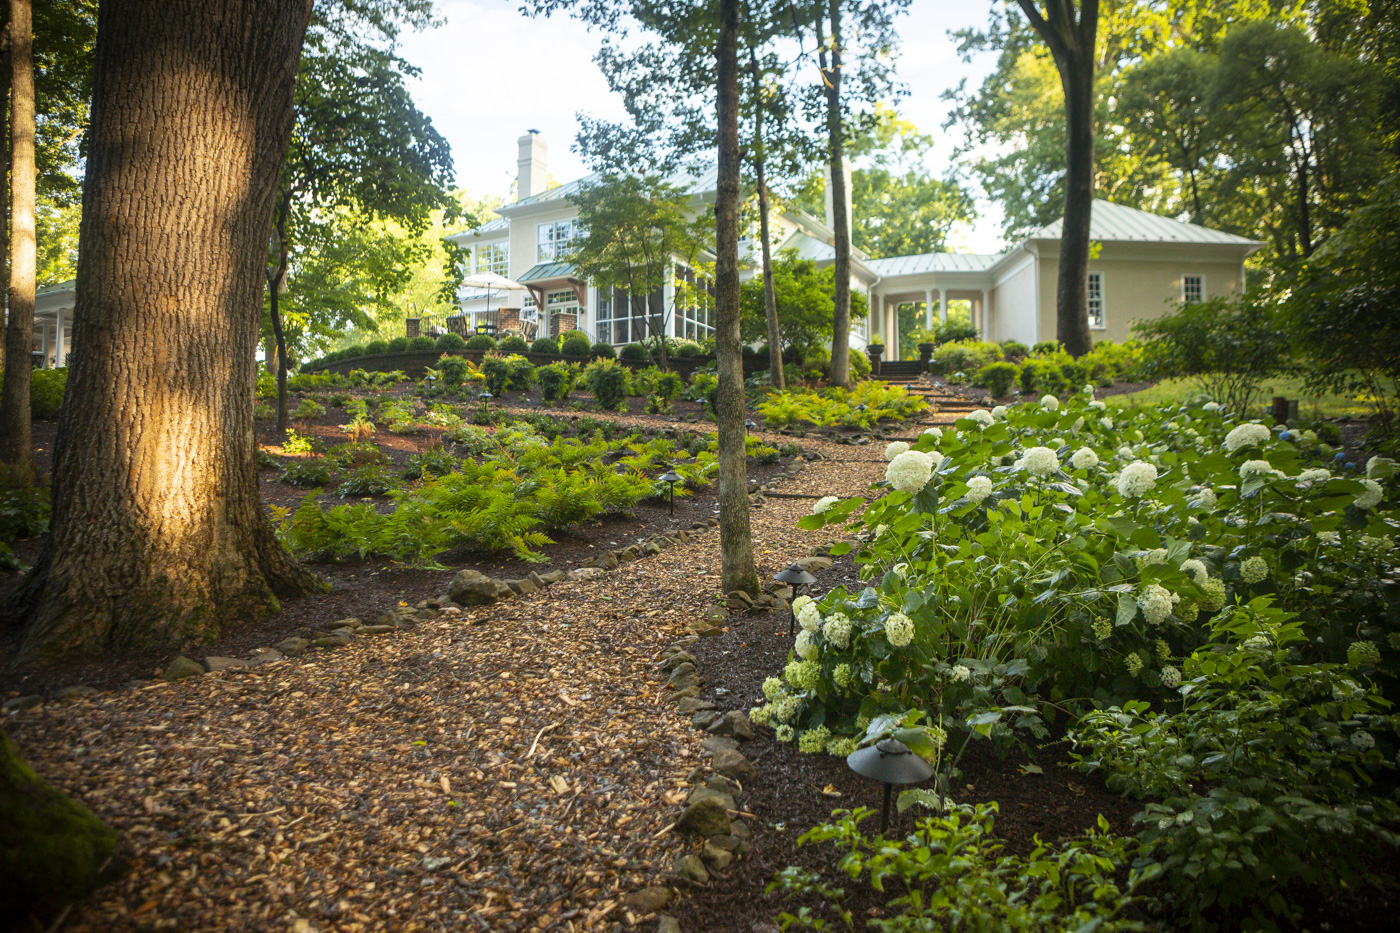 How Does a Mild Winter in South Riding, VA Impact Your Landscaping?